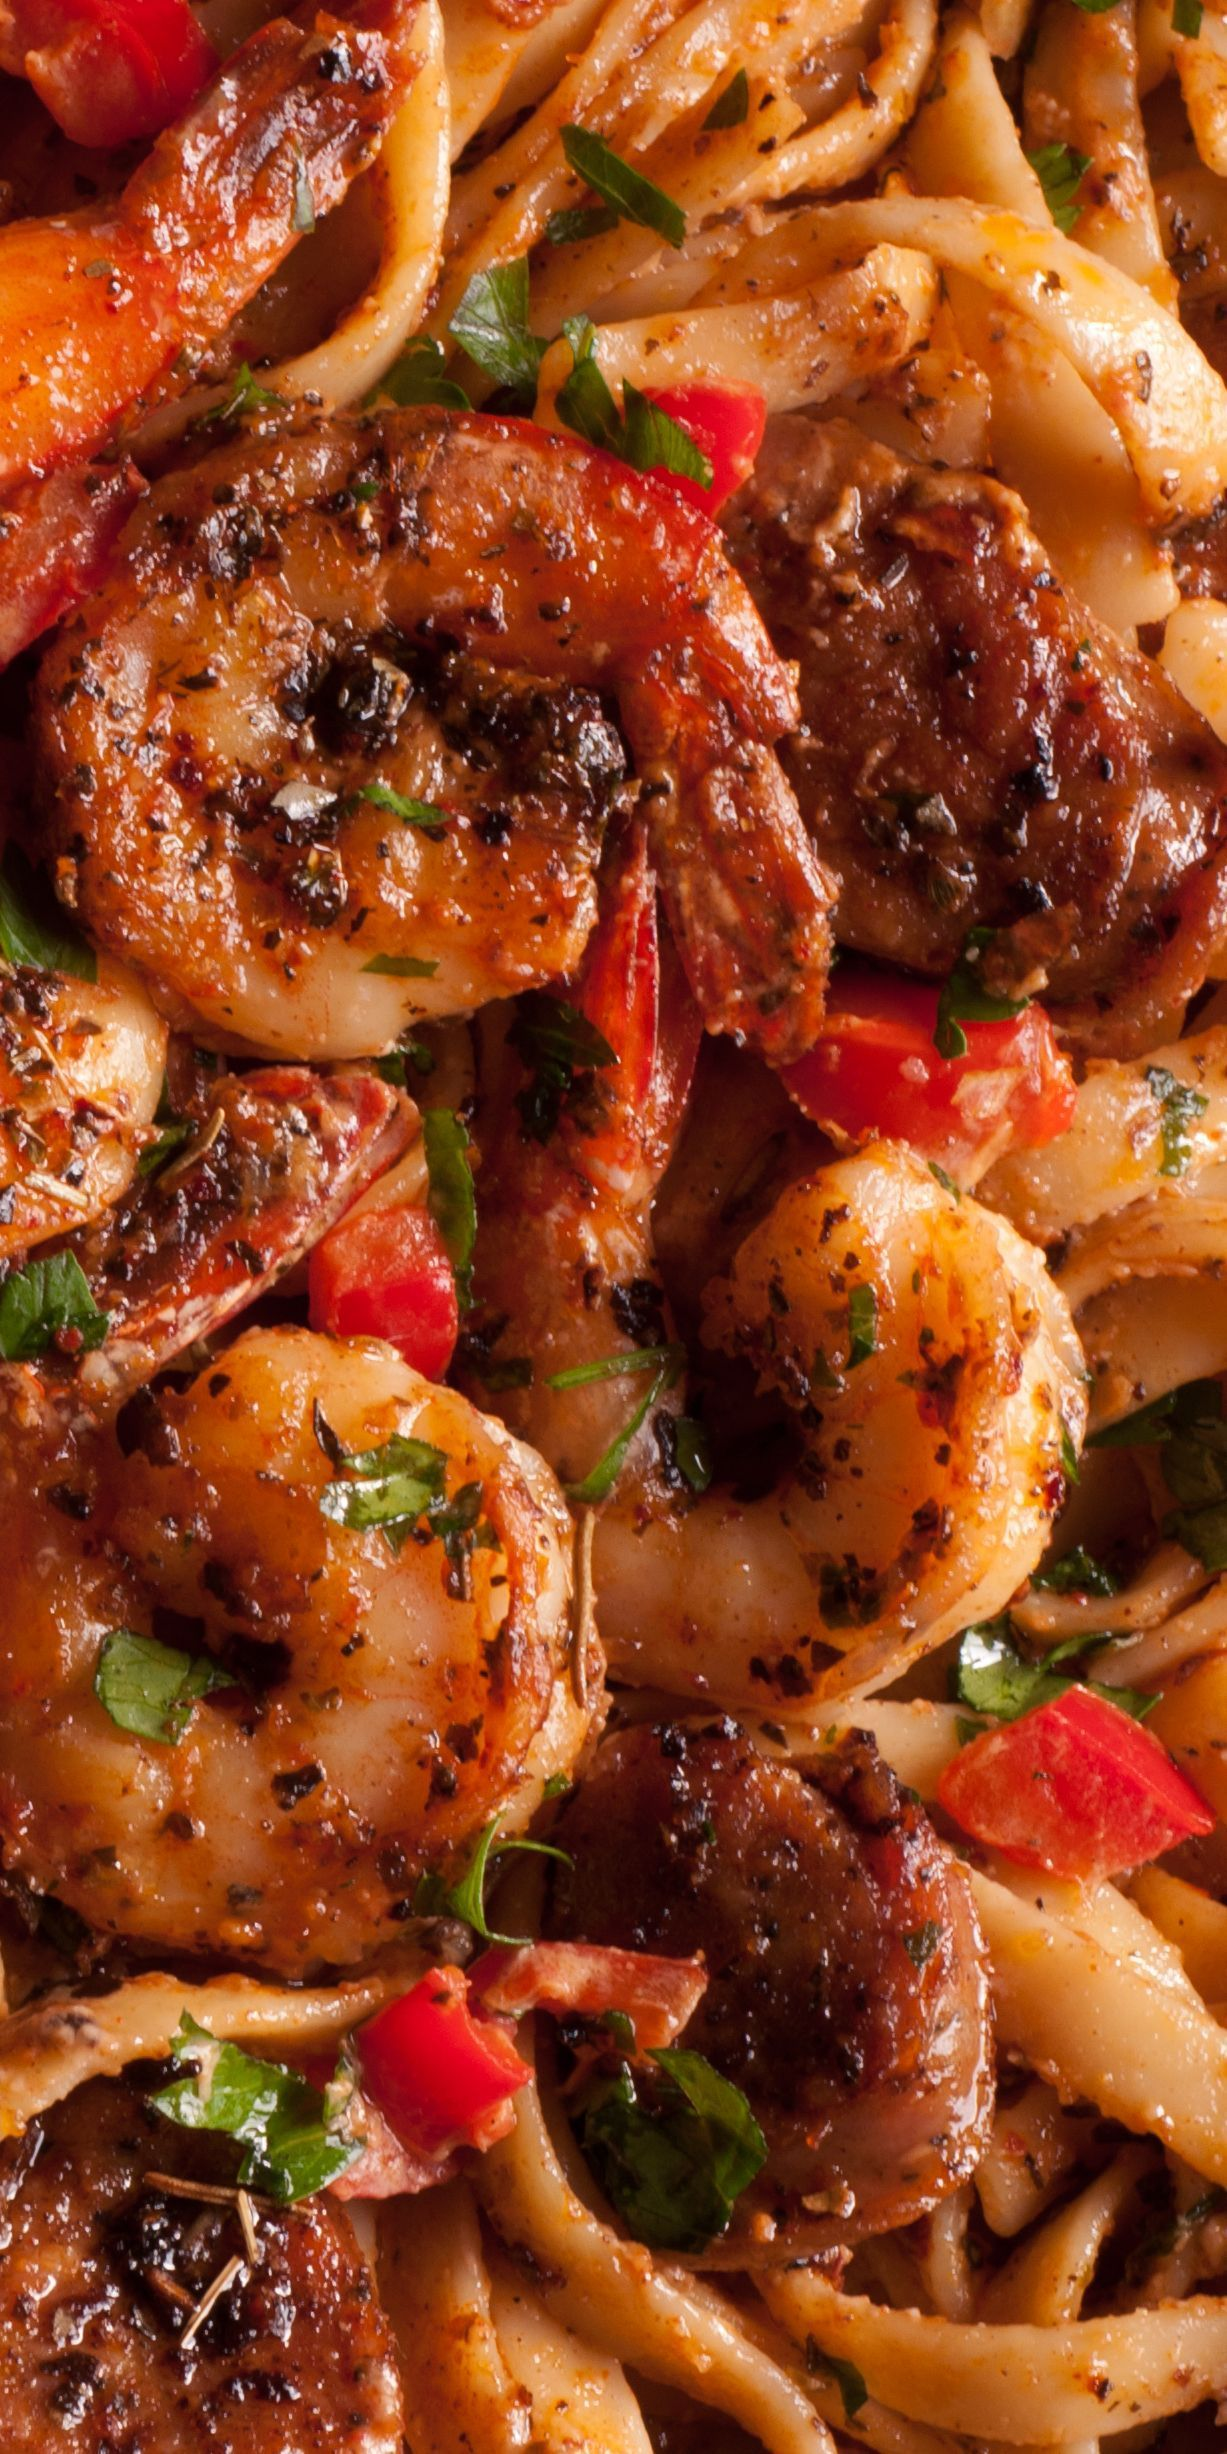 Cajun Shrimp Wurst Pasta Cajun Pasta Shrimp Wurst In 2020 Shrimp Recipes For Dinner Shrimp Recipes Easy Baked Shrimp Recipes Healthy